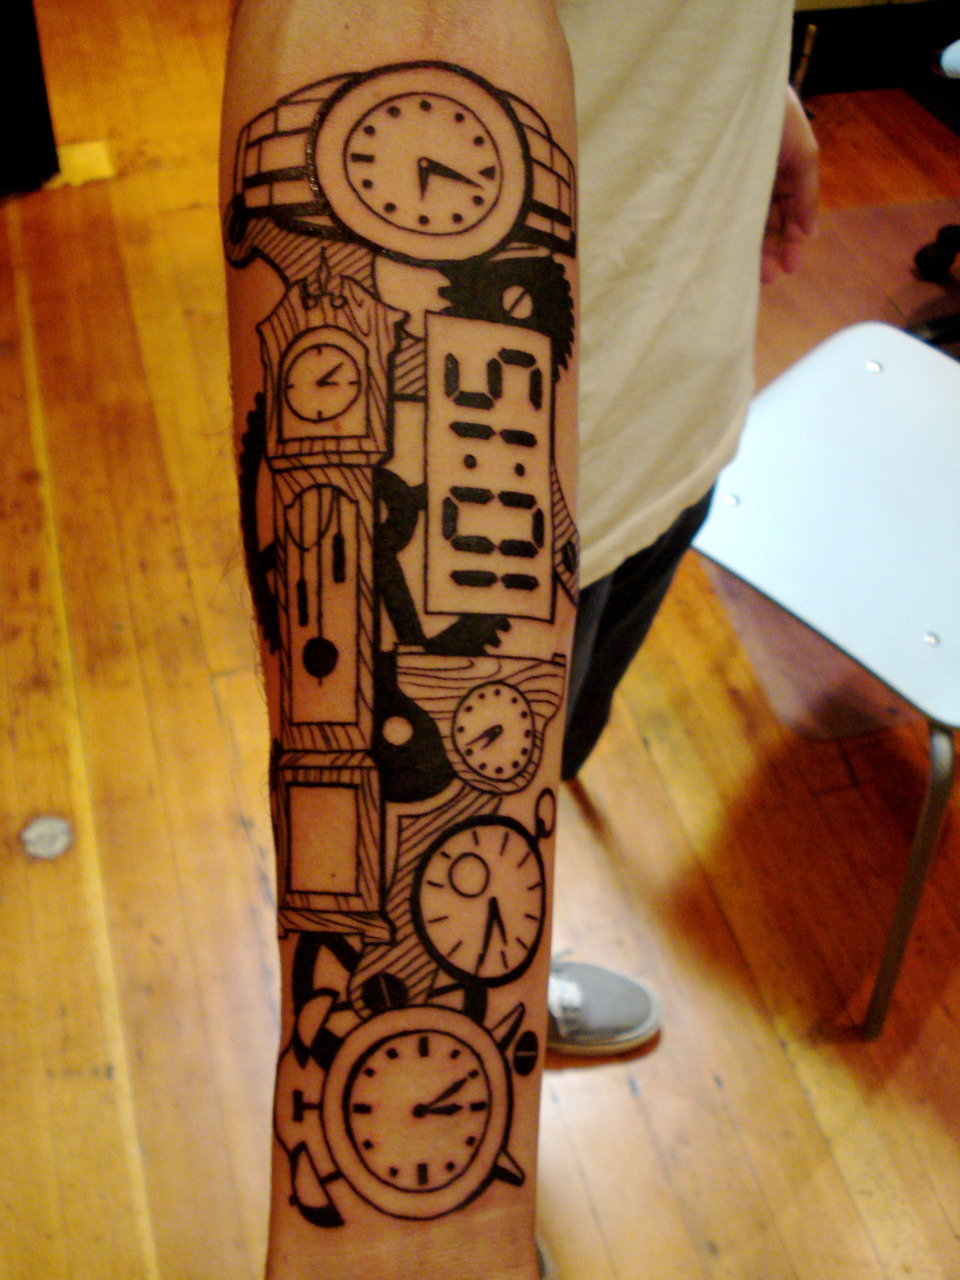 clocks-tattoo1.jpeg